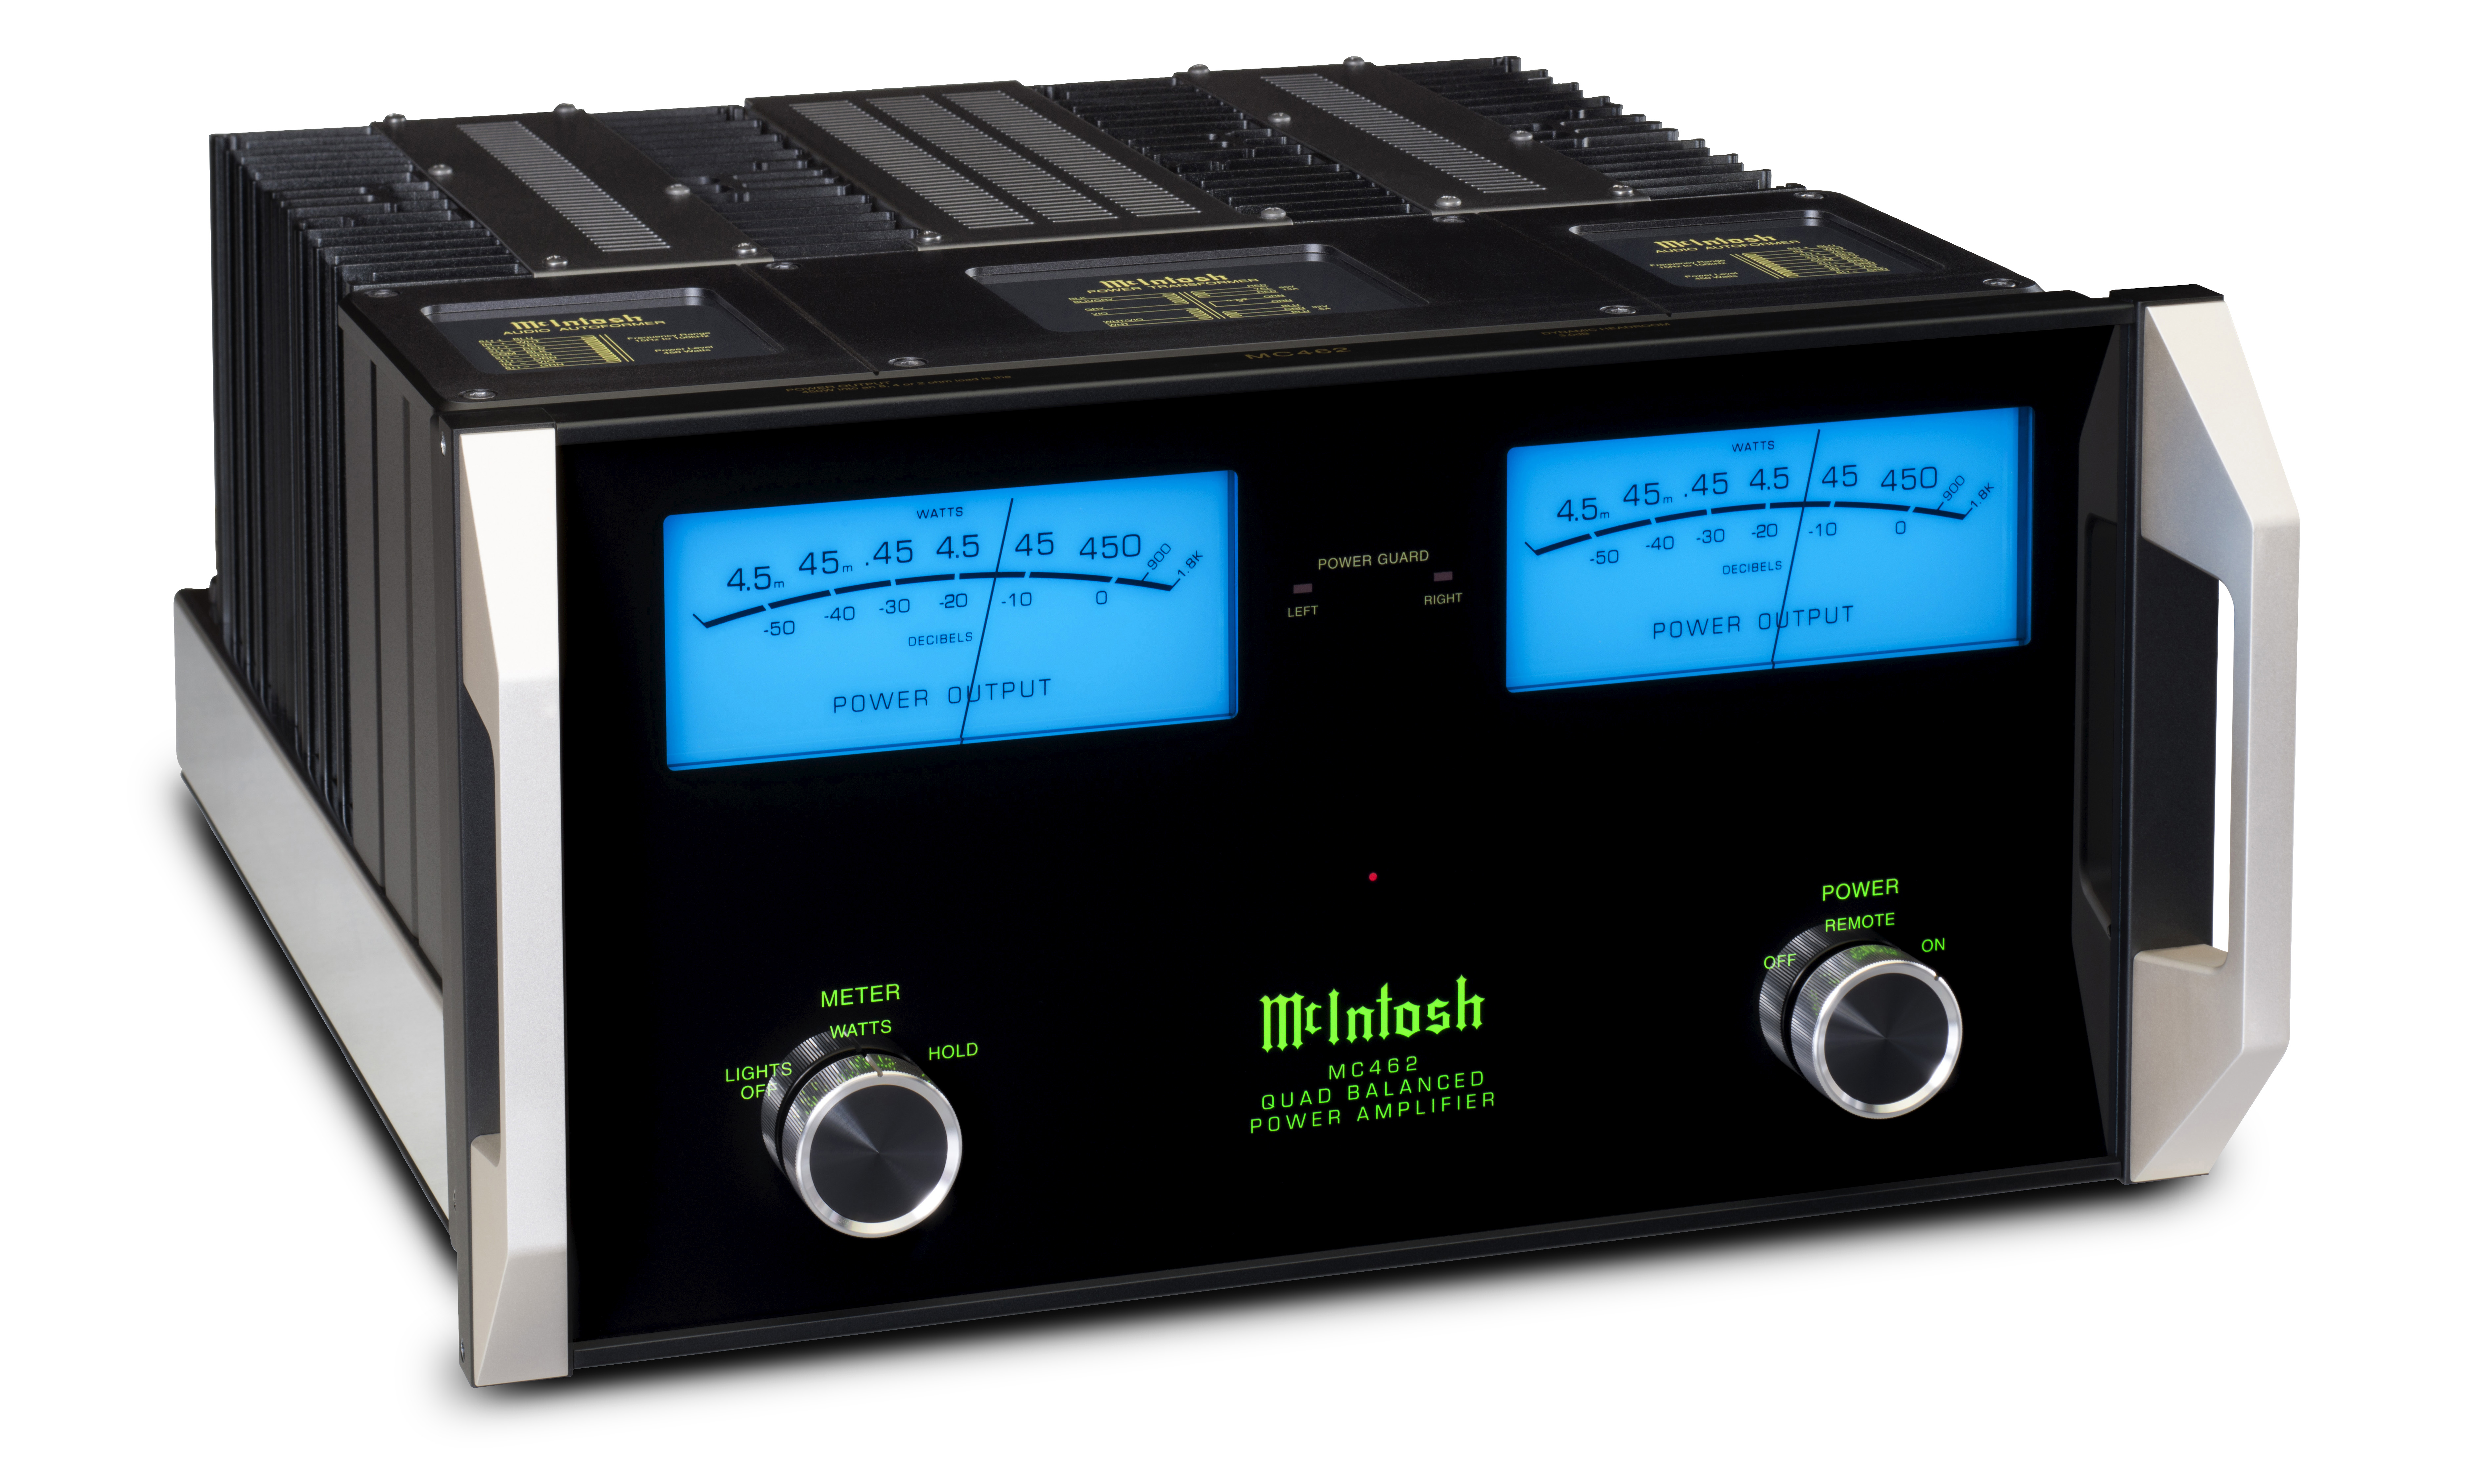 Mcintosh Mc462 Audio Lifestyle Wiring Home Equipment Our Eco Friendly Power Management System Has Been Added While Internal And Select Circuit Components Have Also Upgraded